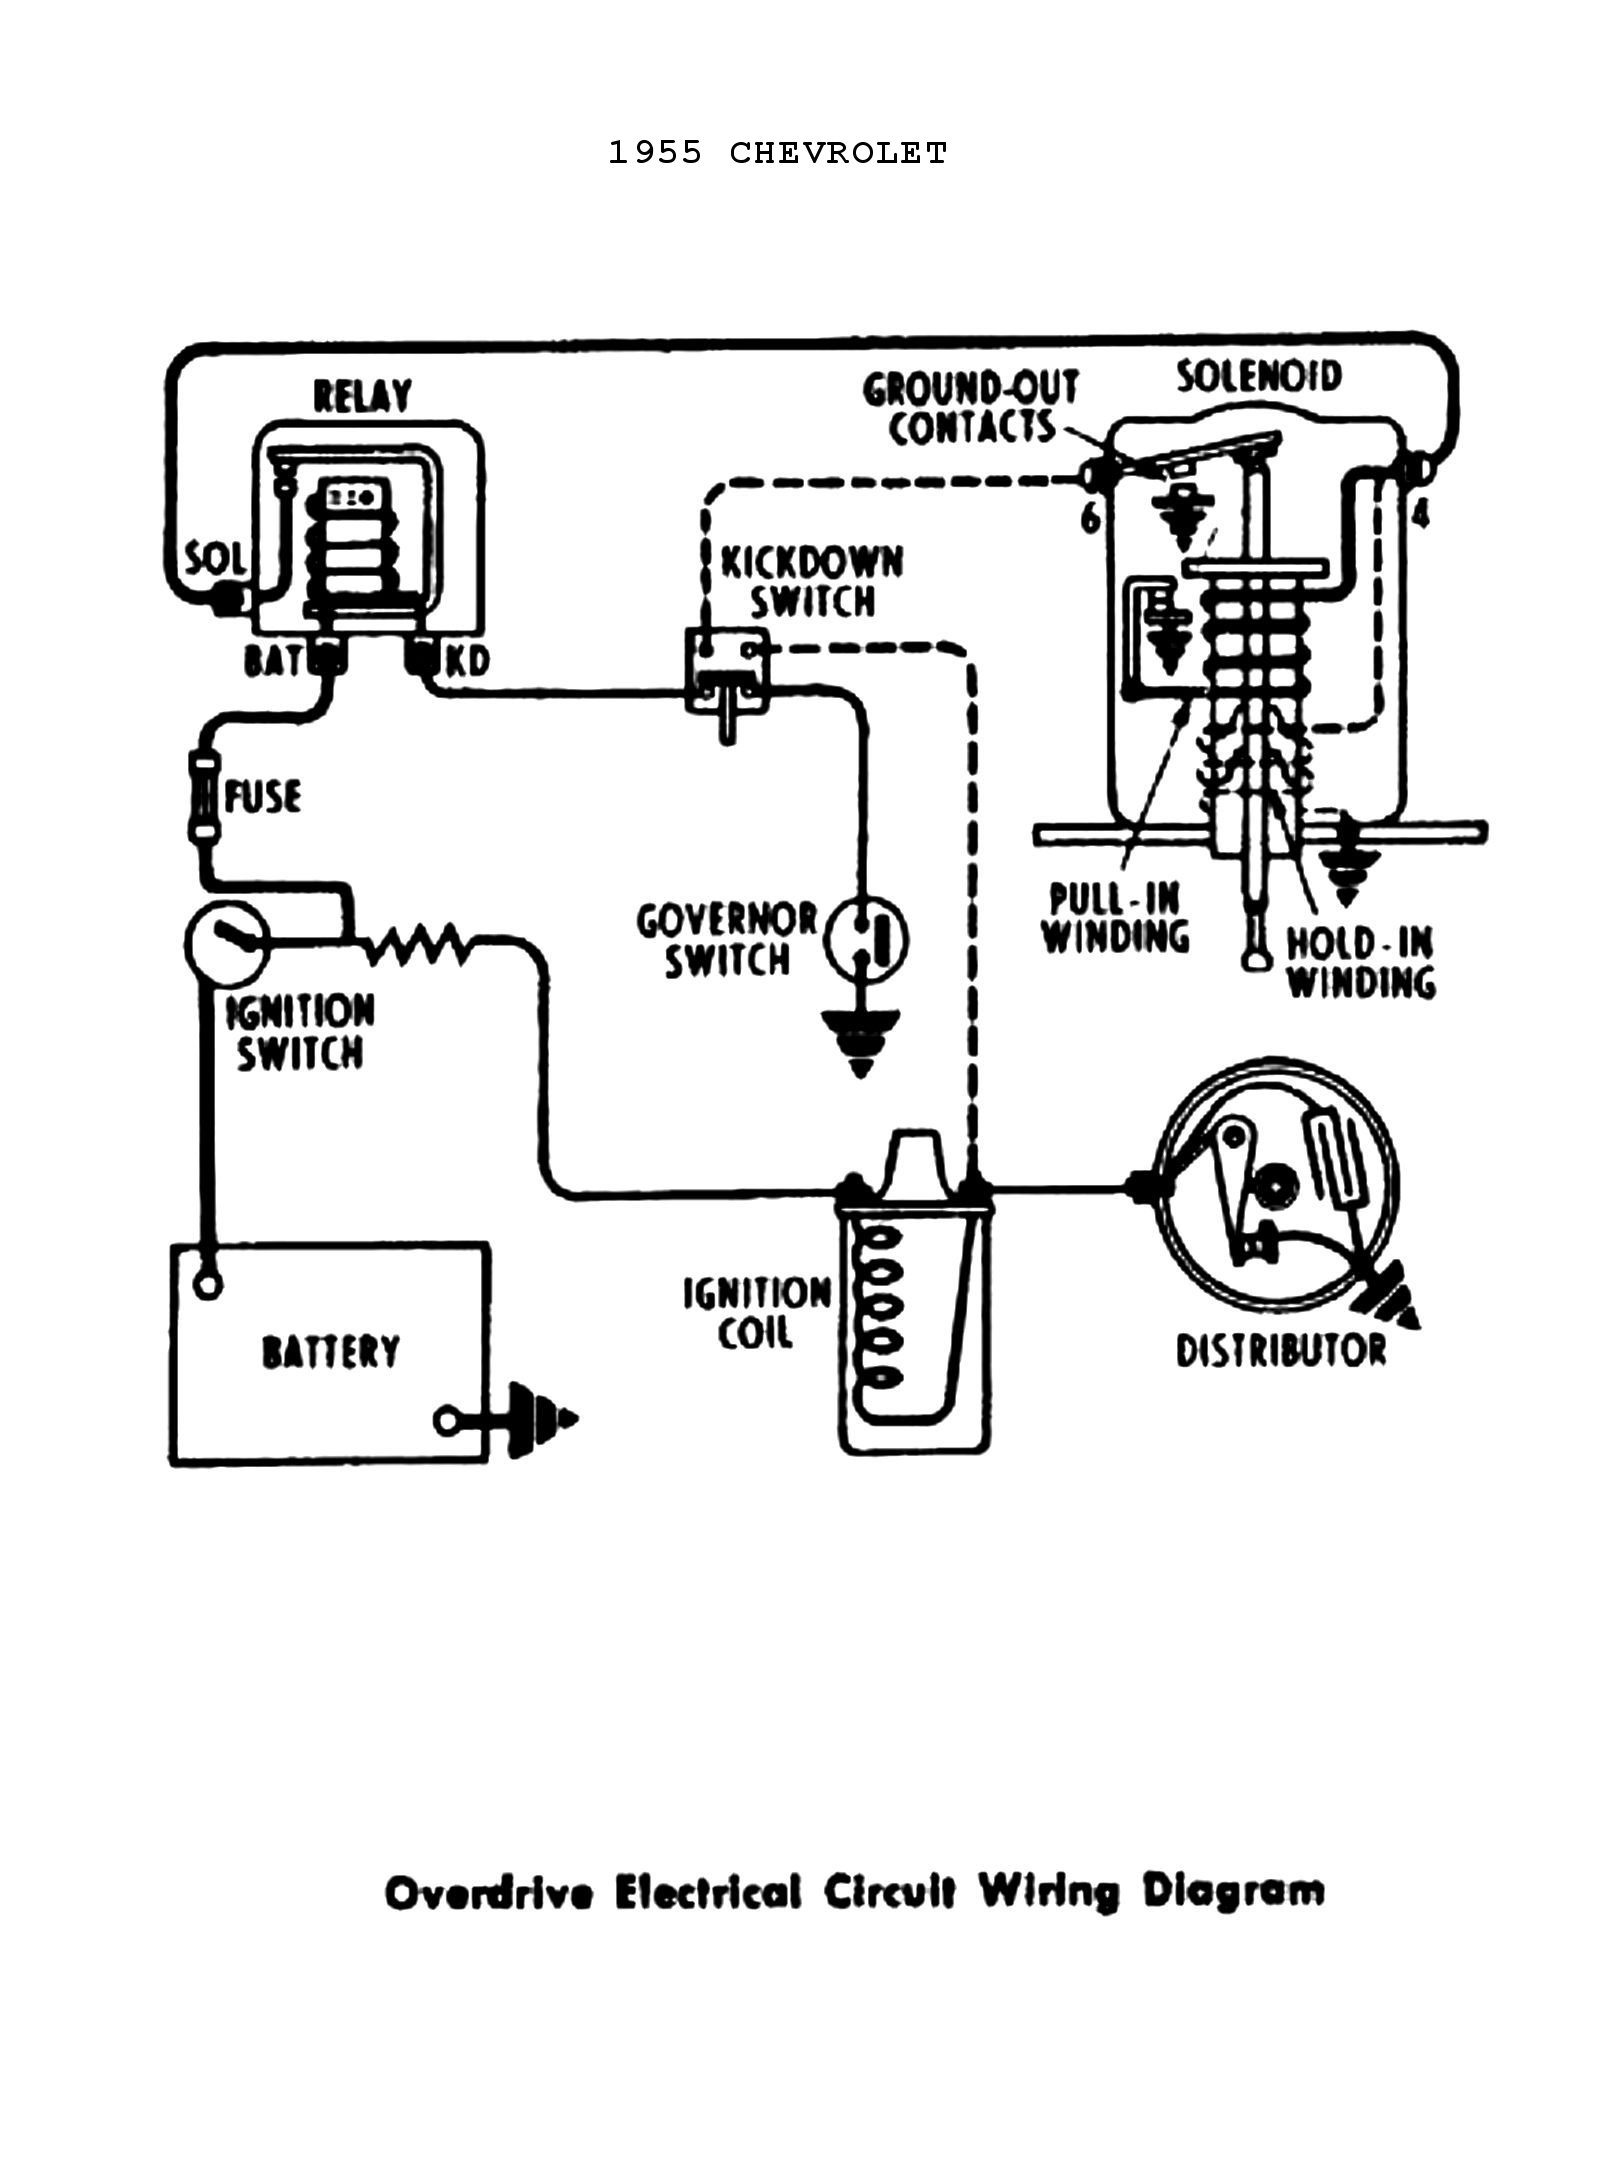 Chevy Ignition Fuse Diagram Just Another Wiring Data 2013 Express Switch Diagrams Oil Pressure